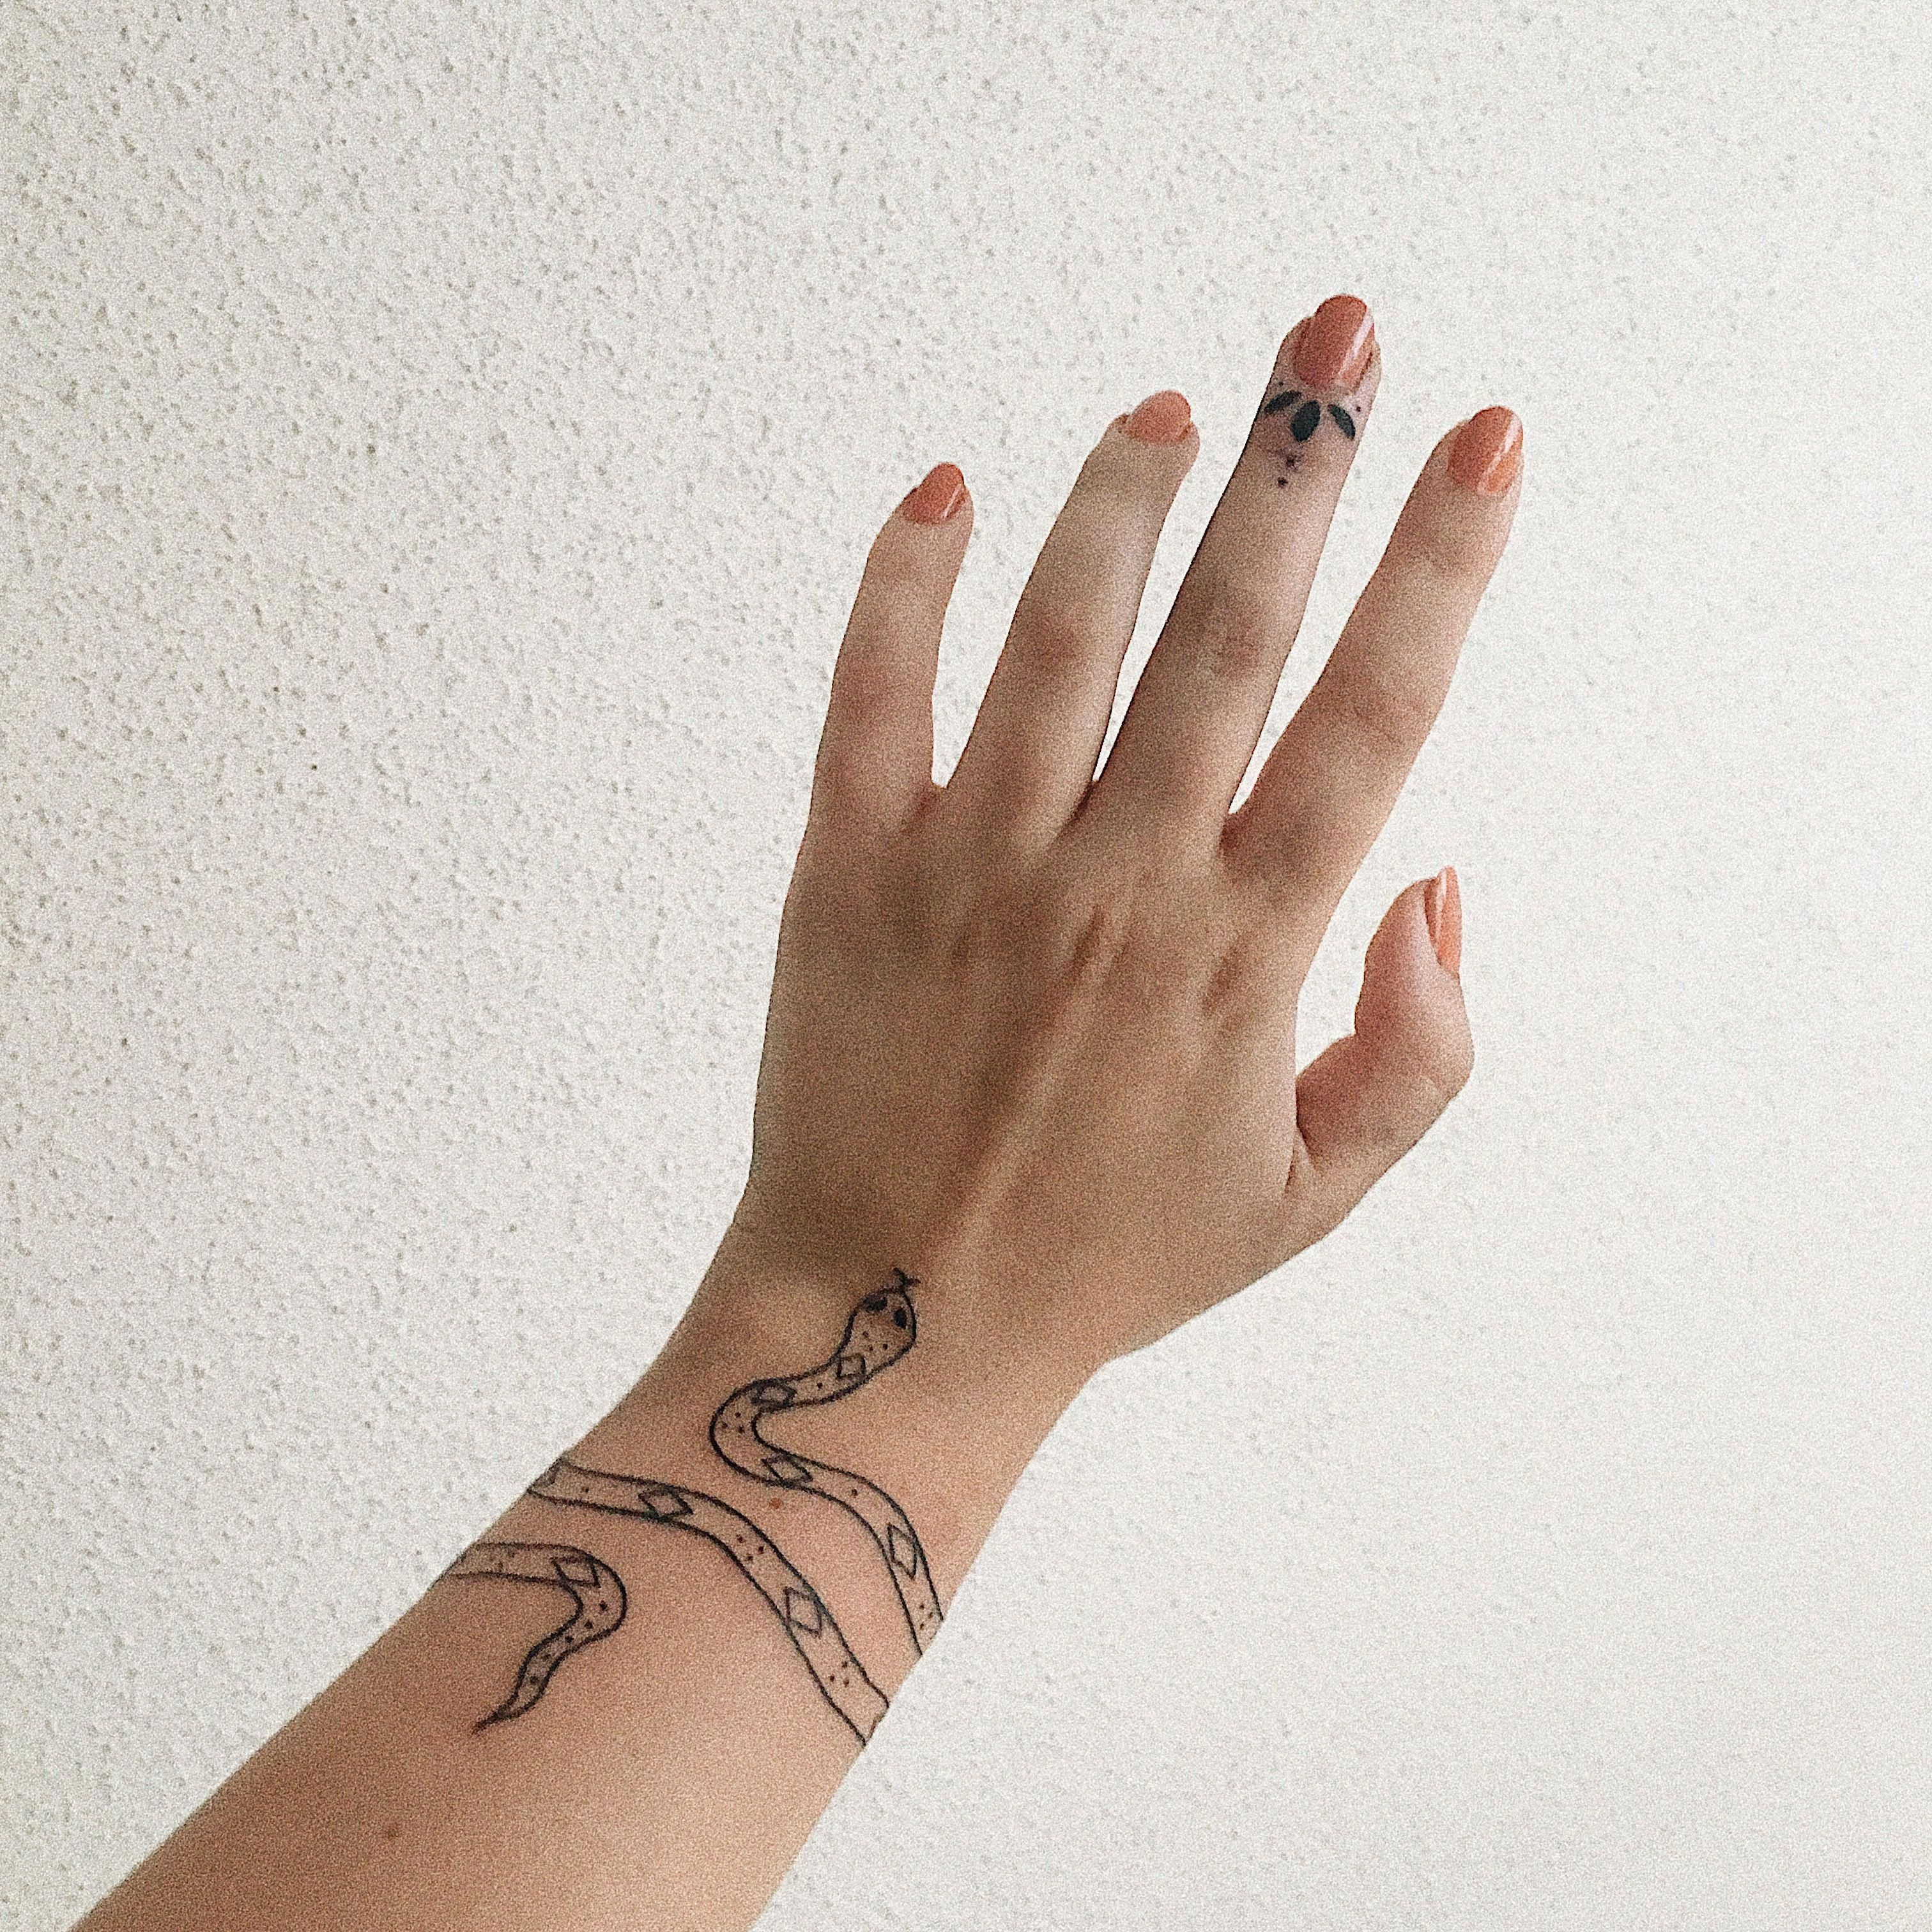 You Can Enjoy tattoo design Using These Useful Tips